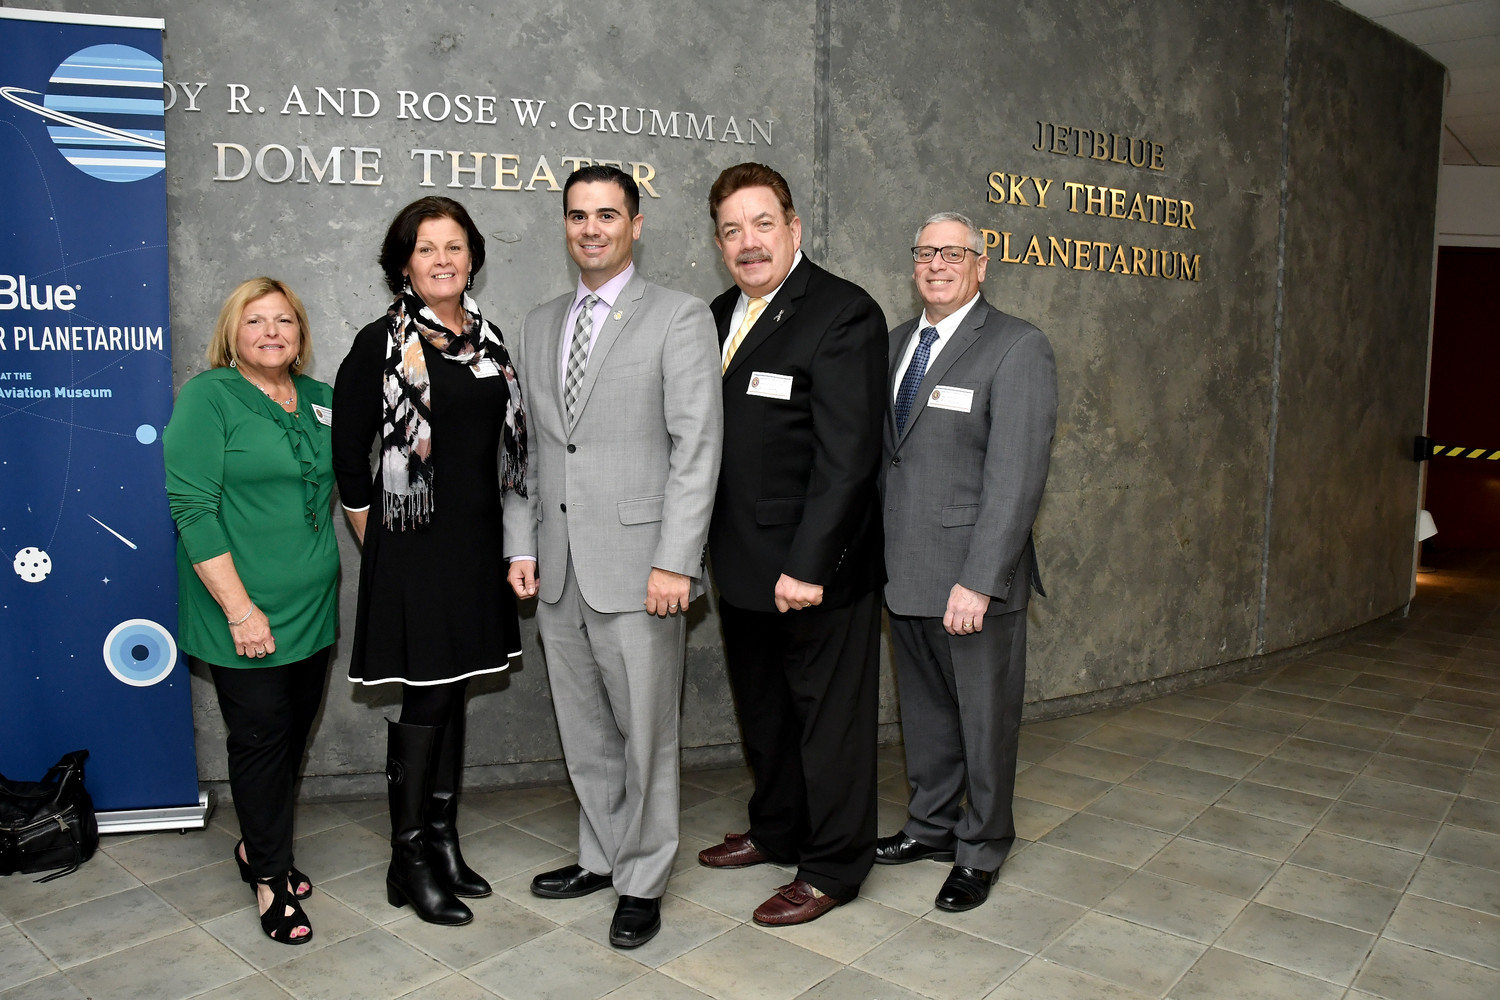 Police Commissioner's Community Council members nominated by Nassau County Legislator John Ferretti, pose at the swearing-in ceremony. (L to R: Helen Meittinis, Kerry Johnson-Gravina, John R. Ferretti, Brian Kelty and William Pastore.)